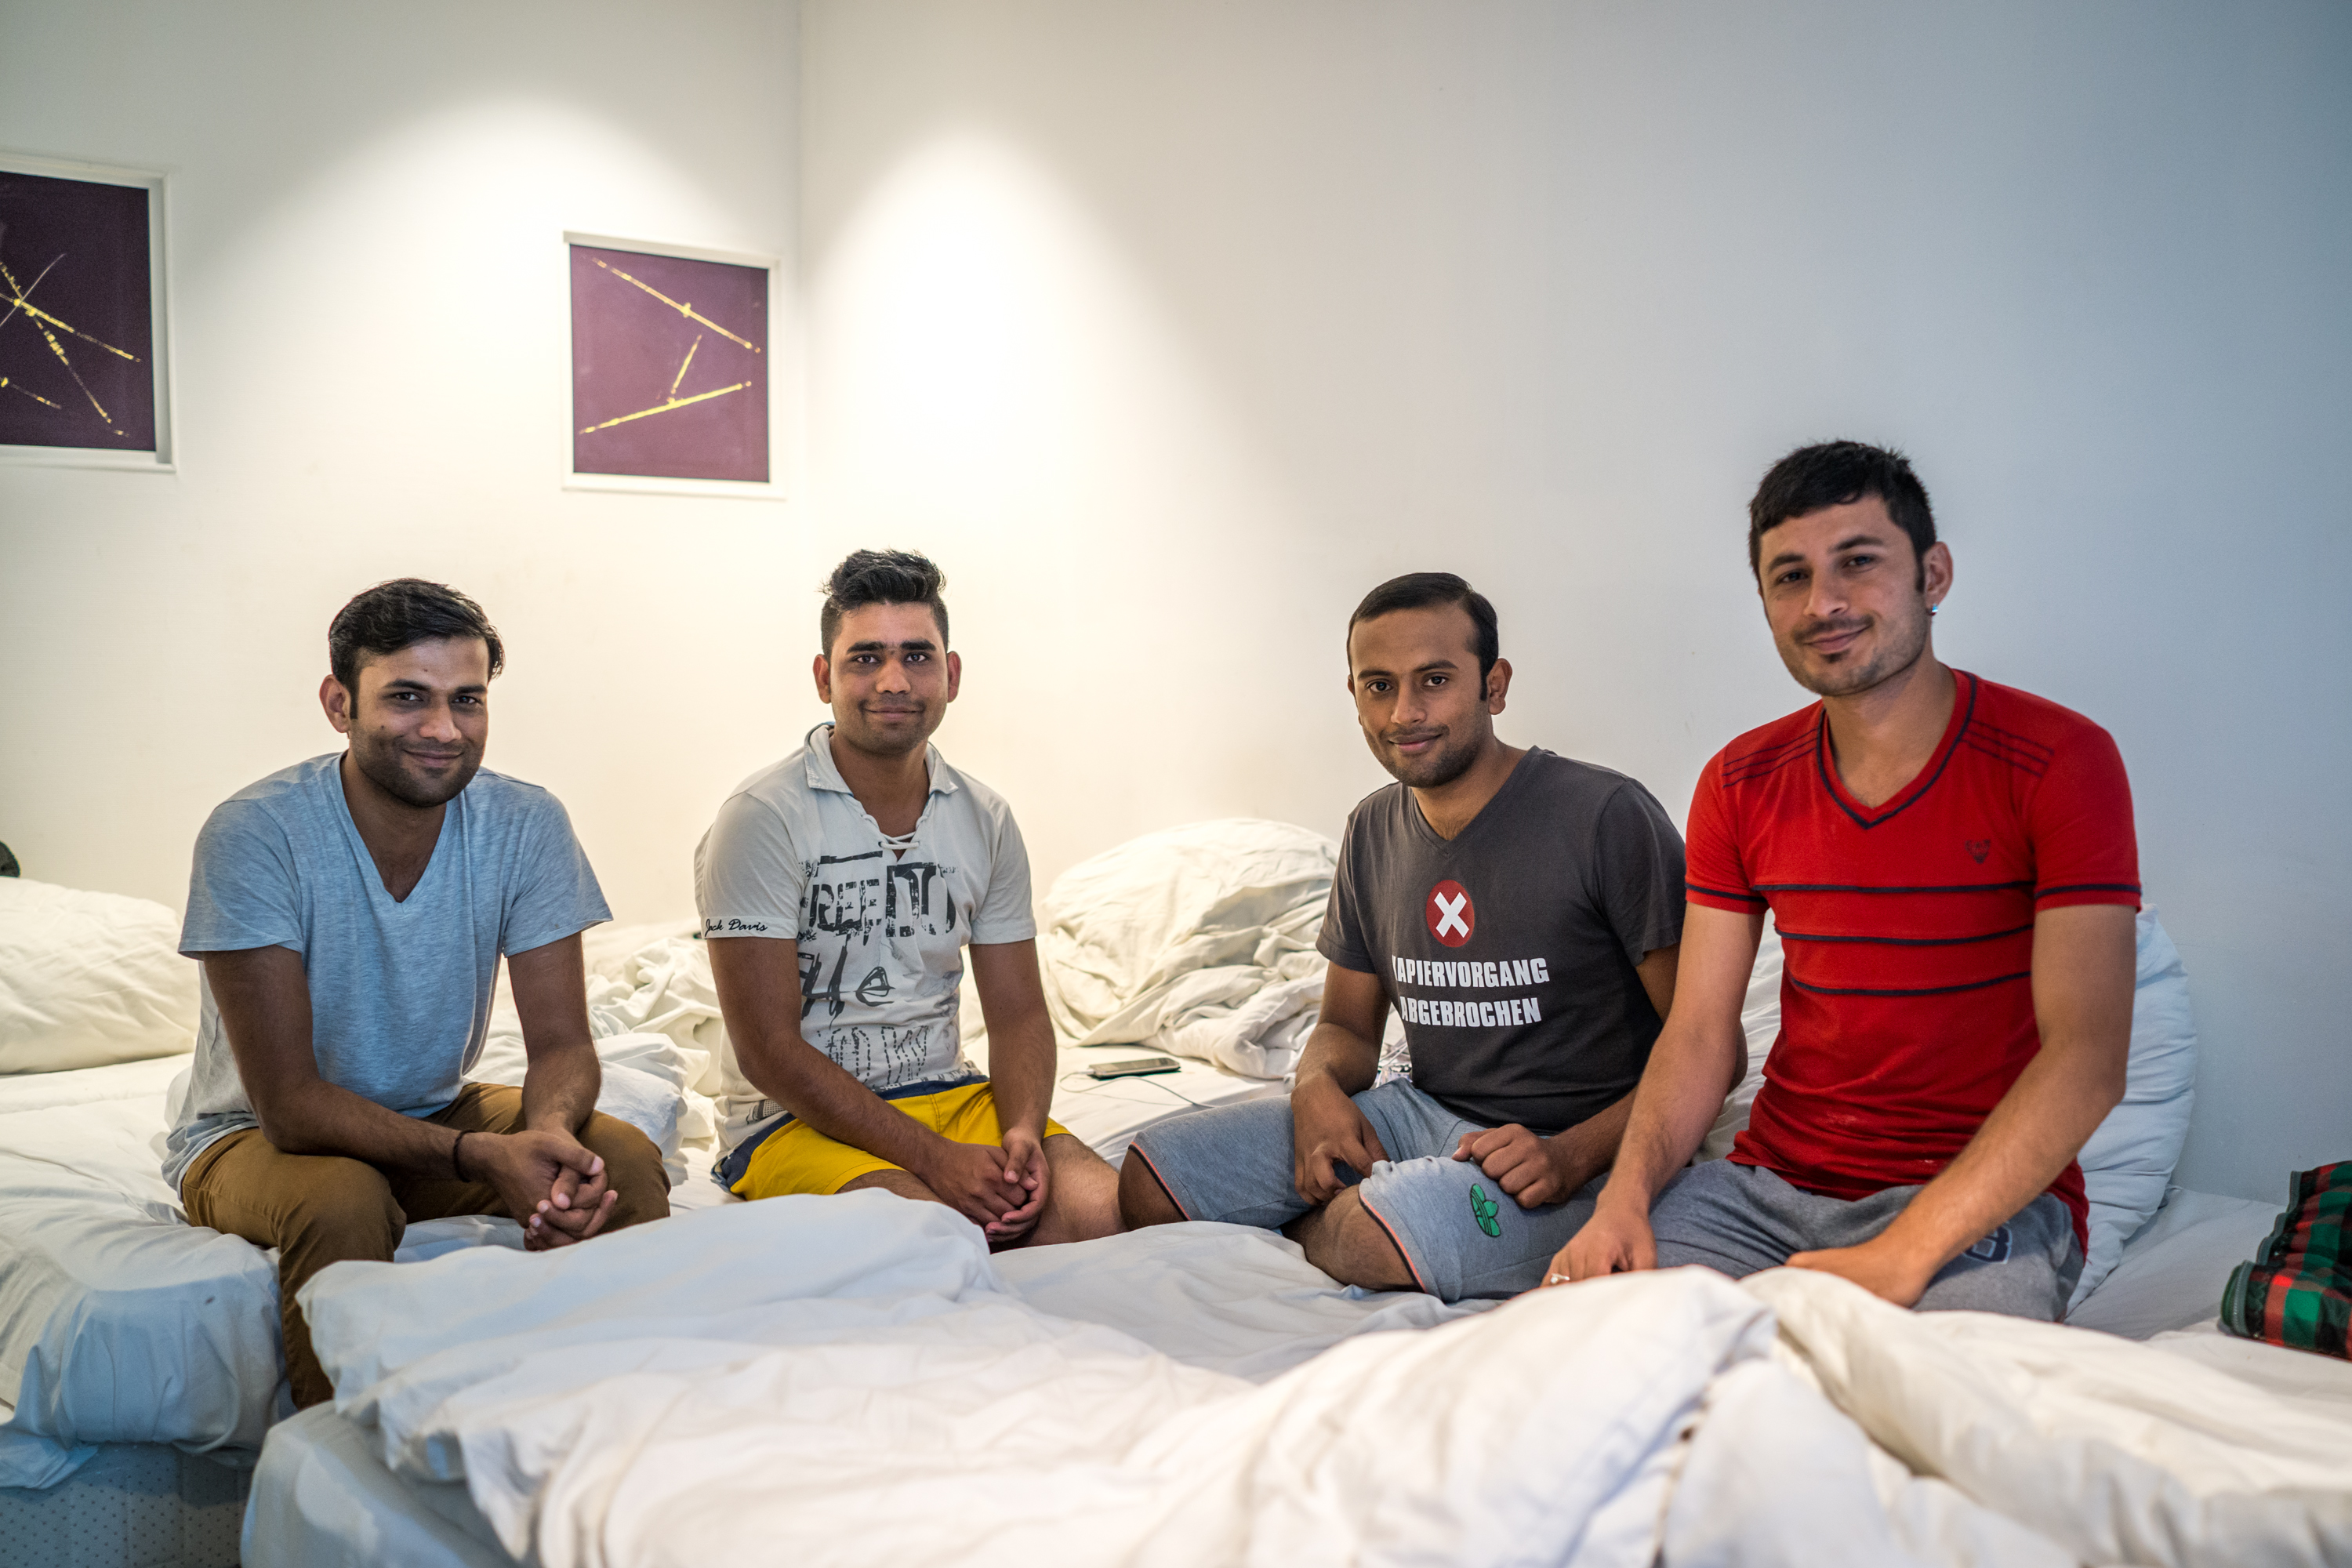 These Pakistani men continue to room together at the Spree.